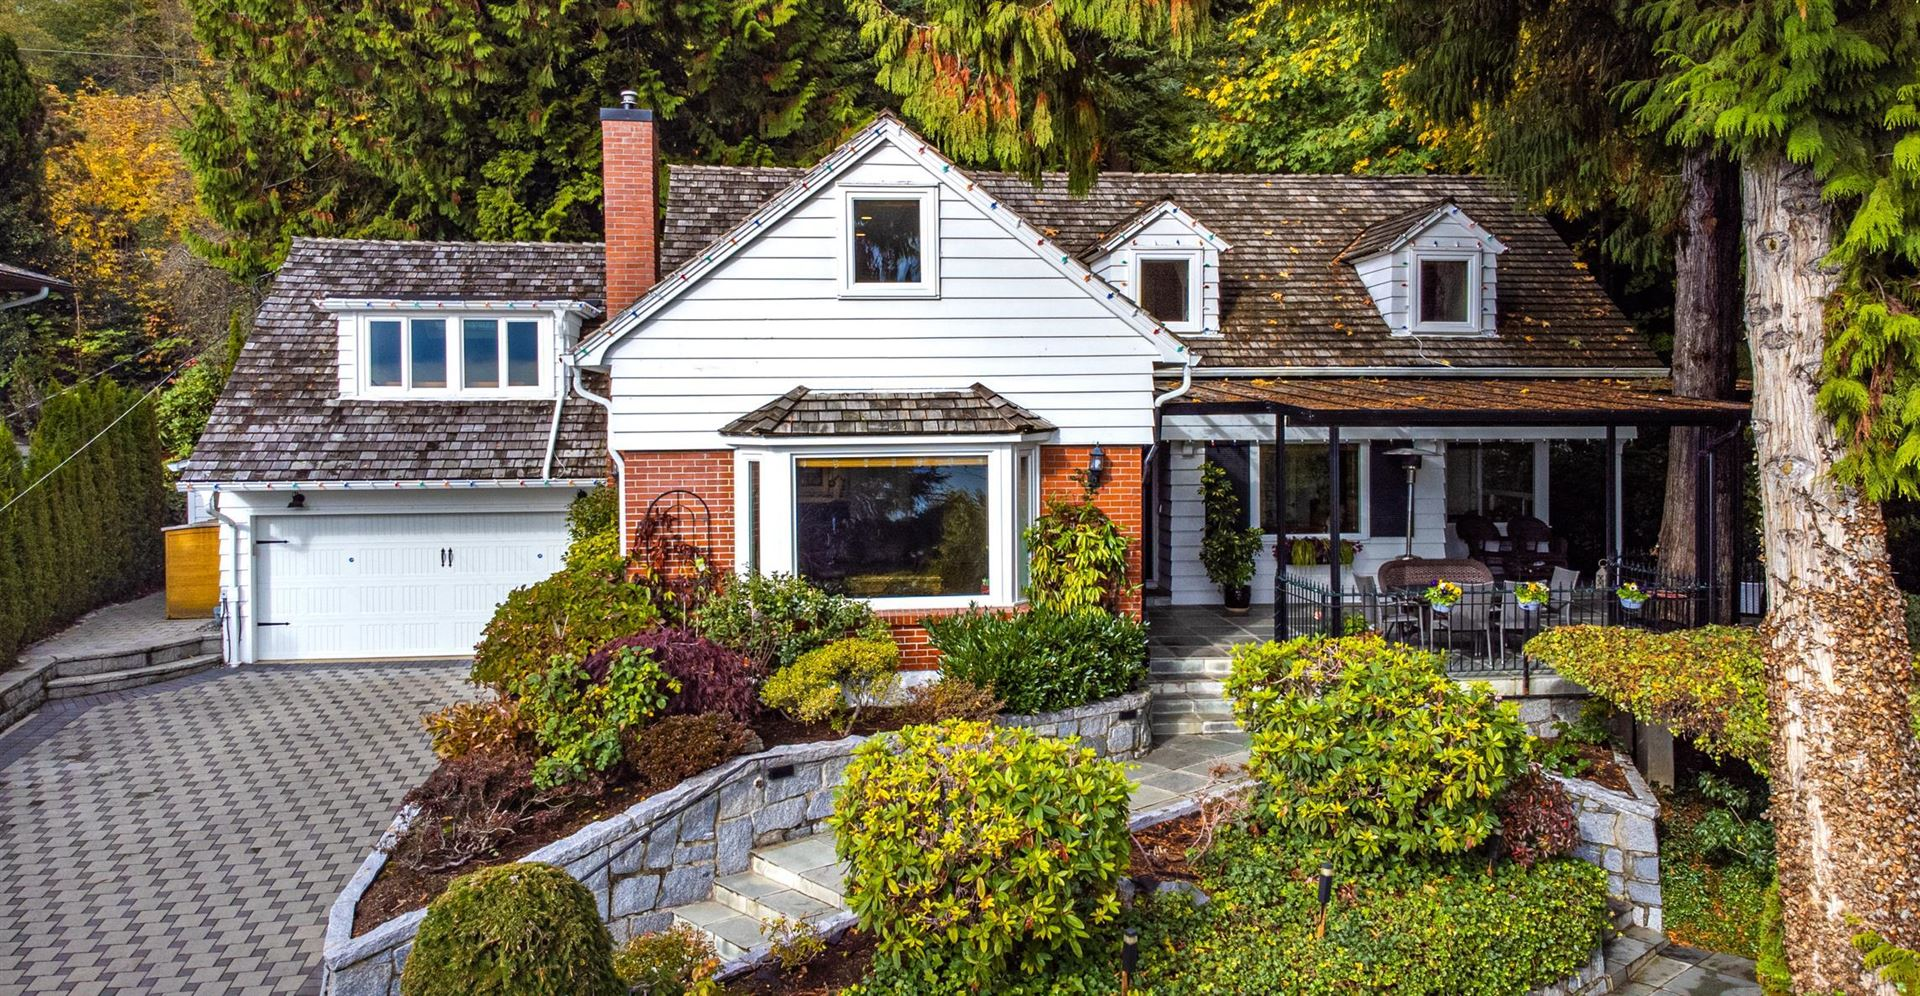 Photo of 3175 BENBOW ROAD, West Vancouver, BC V7V 3E1 (MLS # R2627282)